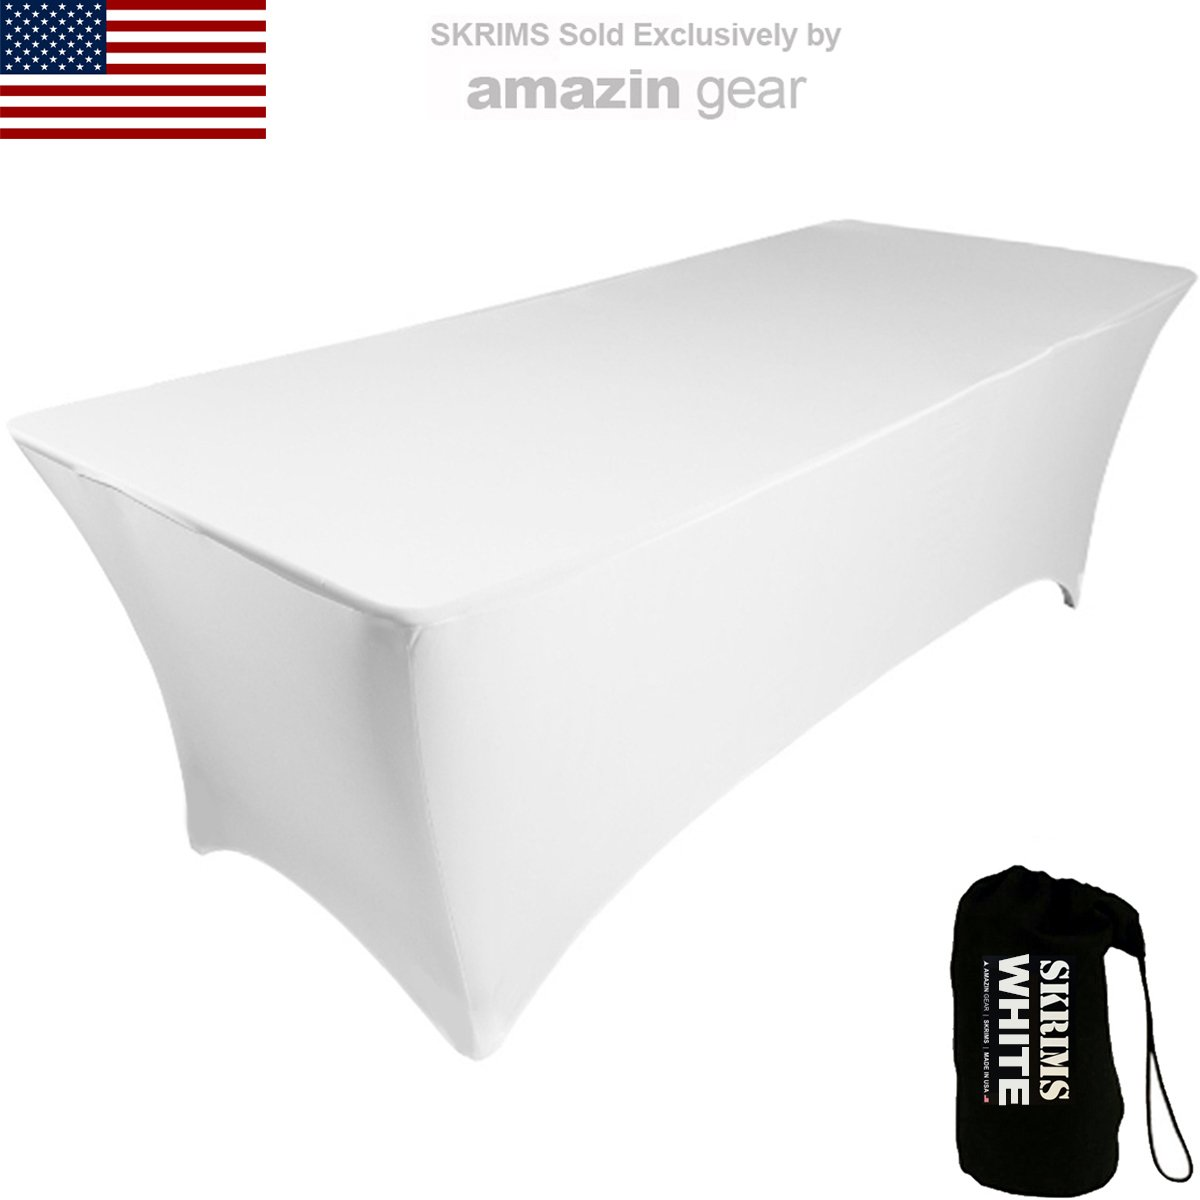 Amazin Gear SKRIMS PRO DJ Table Scrim Cover, 4' WHITE Stretch Spandex Tablecloth w/Cable Holes +FREE Bag, Ideal Glow LED Light Effect